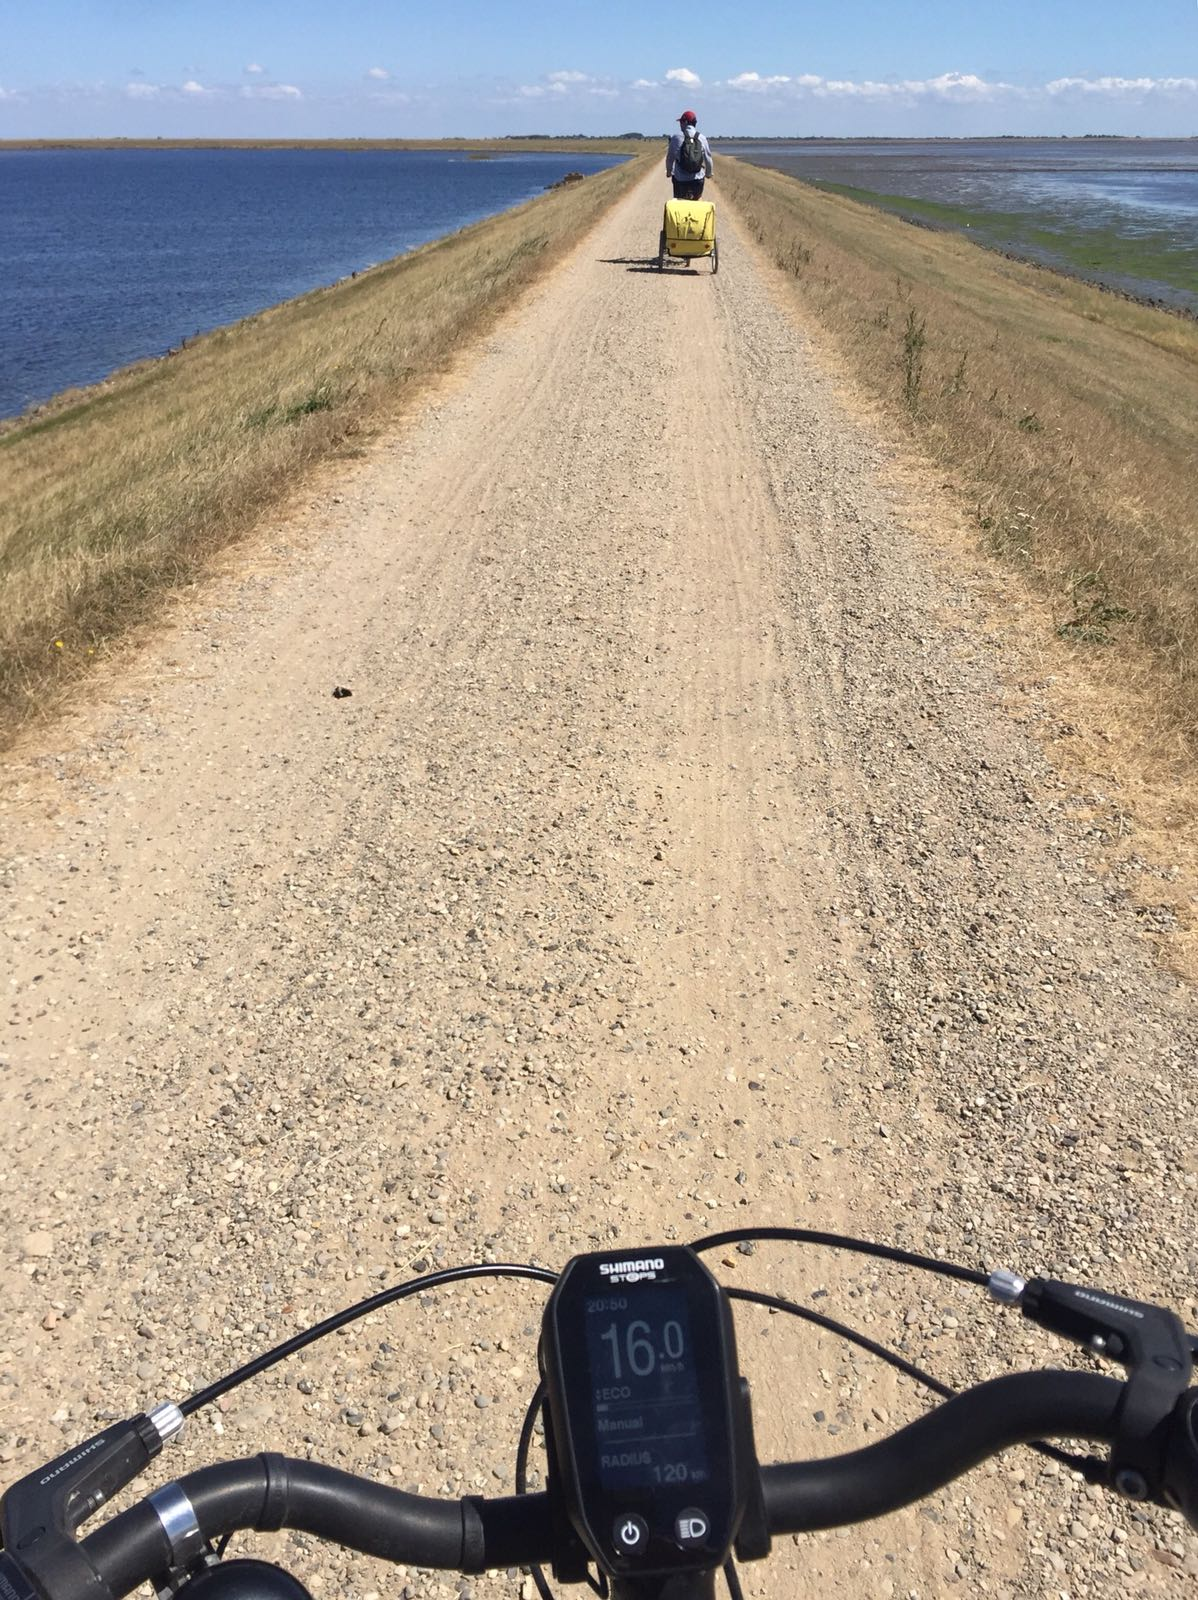 E-bike ride around the Rantum basin